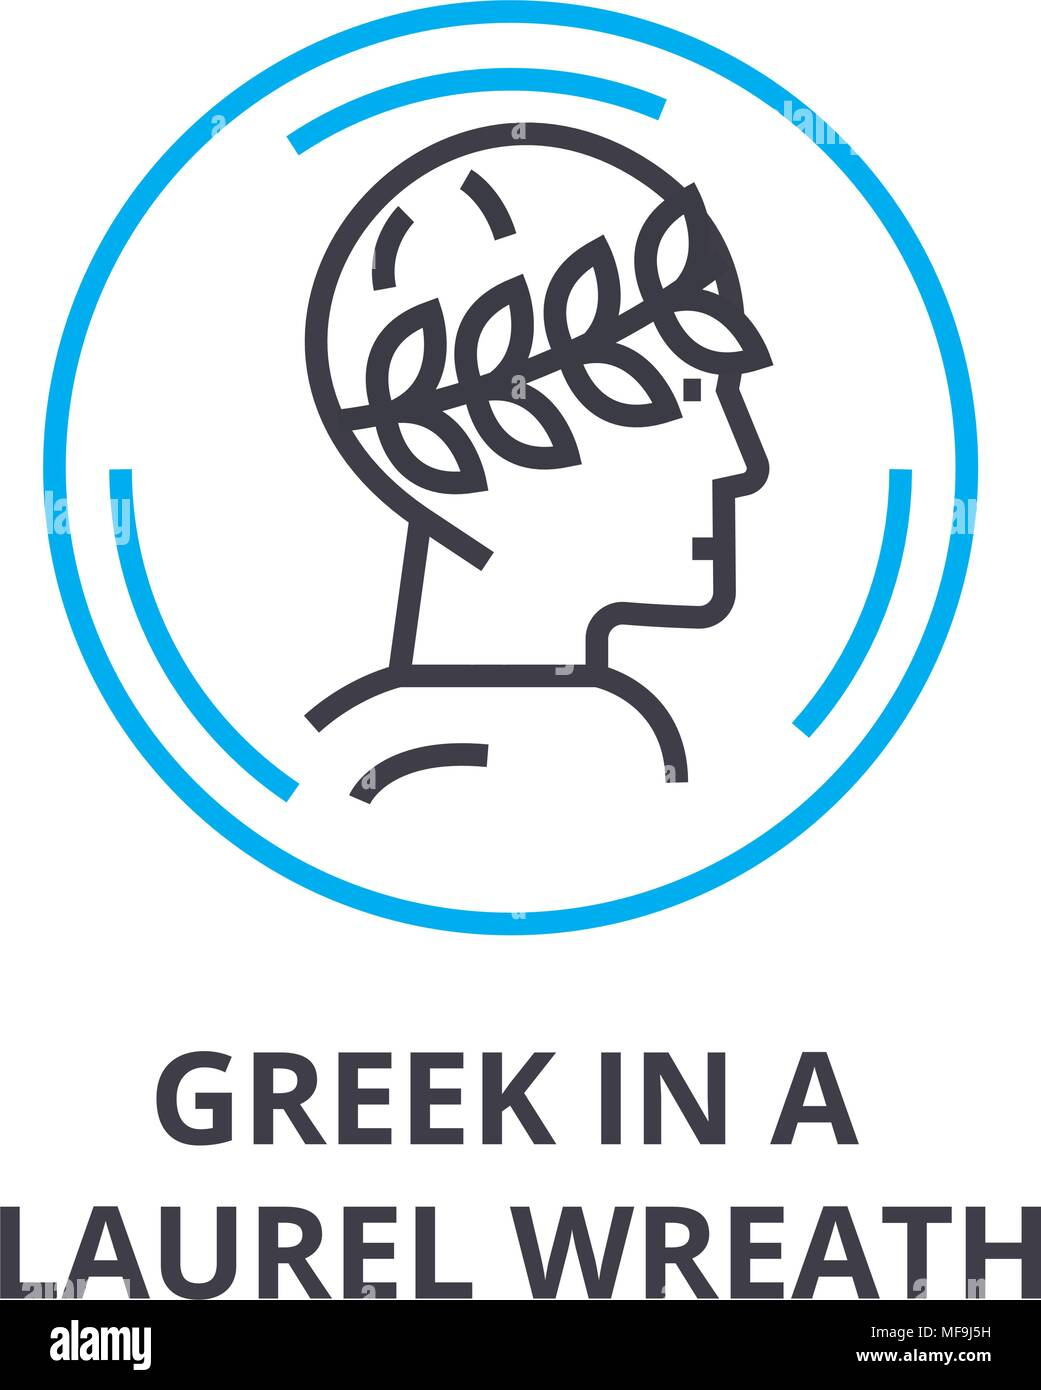 greek in a laurel wreath thin line icon, sign, symbol, illustation, linear concept, vector  - Stock Image